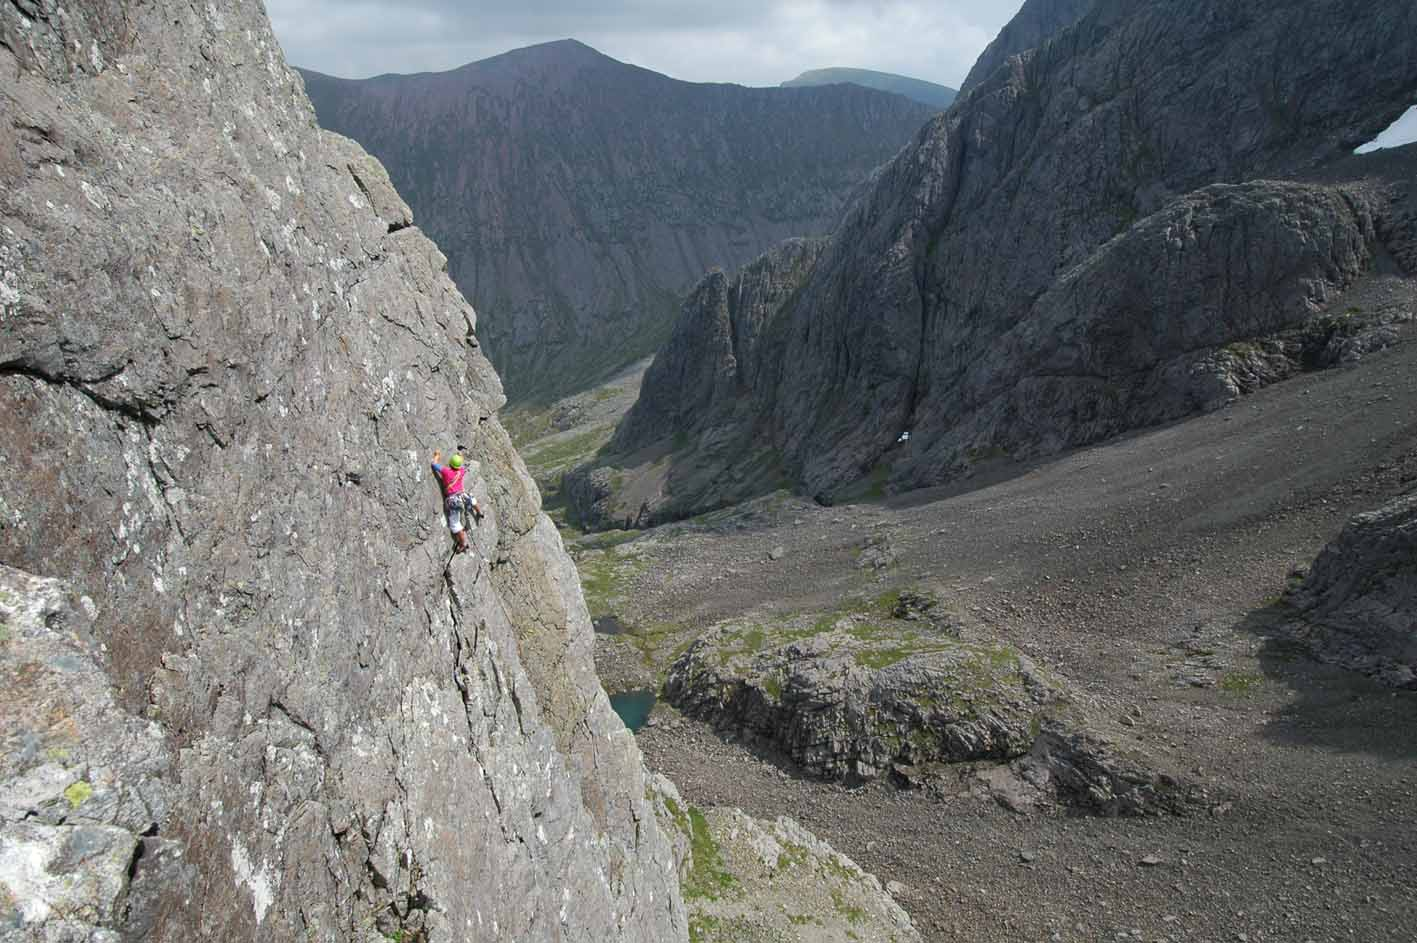 Strident Edges South, Ben Nevis, 157 kb